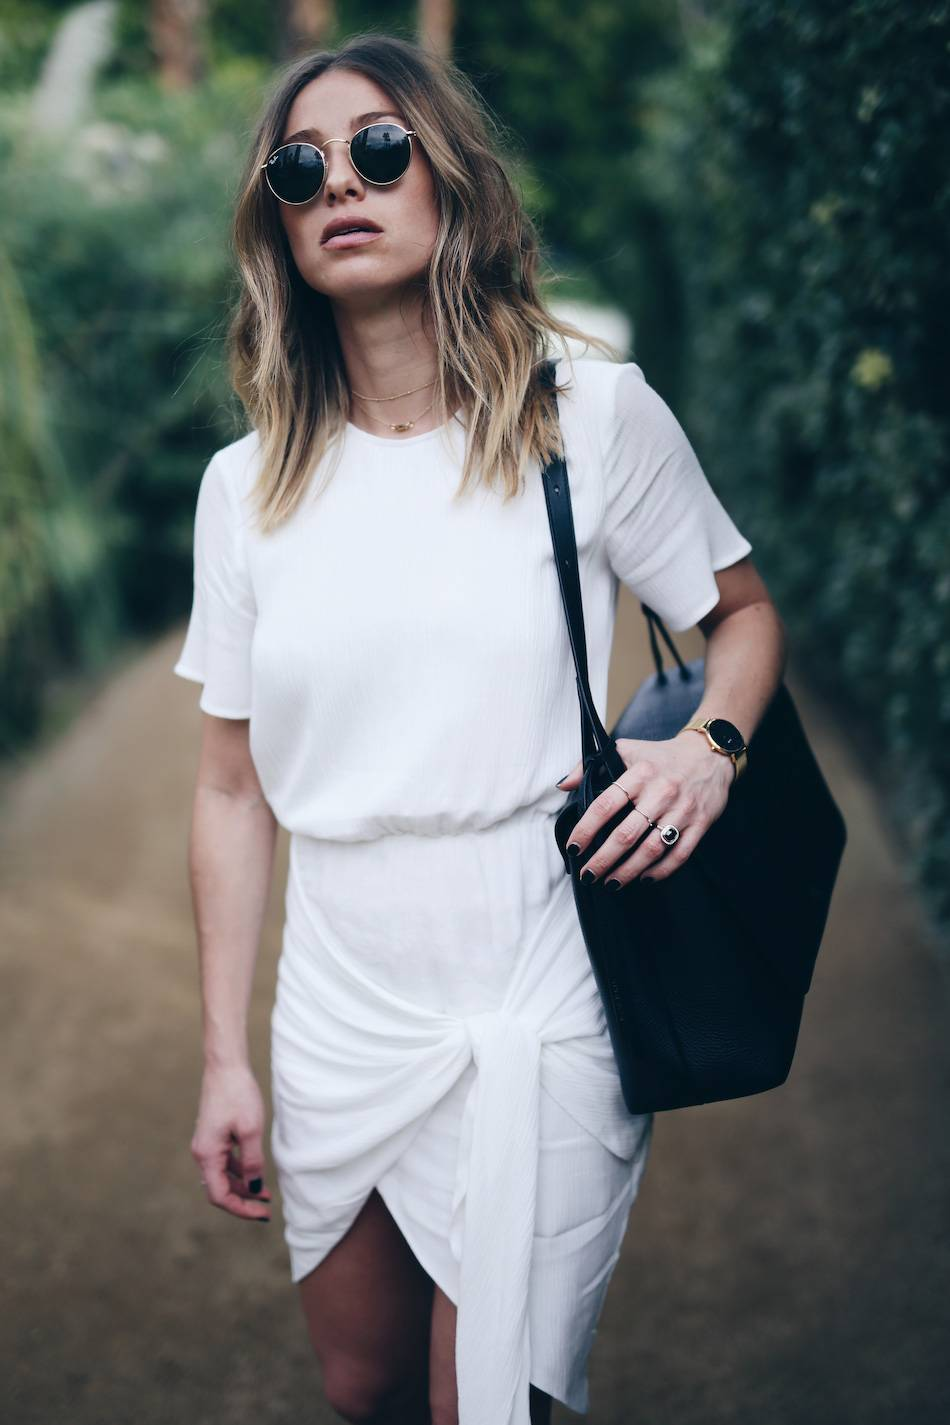 Style-and-beauty-blogger-Jill-Lansky-of-The-August-Diaries-on-self-love-in-white-wrap-Stylestalker-dress-Ray-Ban-round-sunglasses